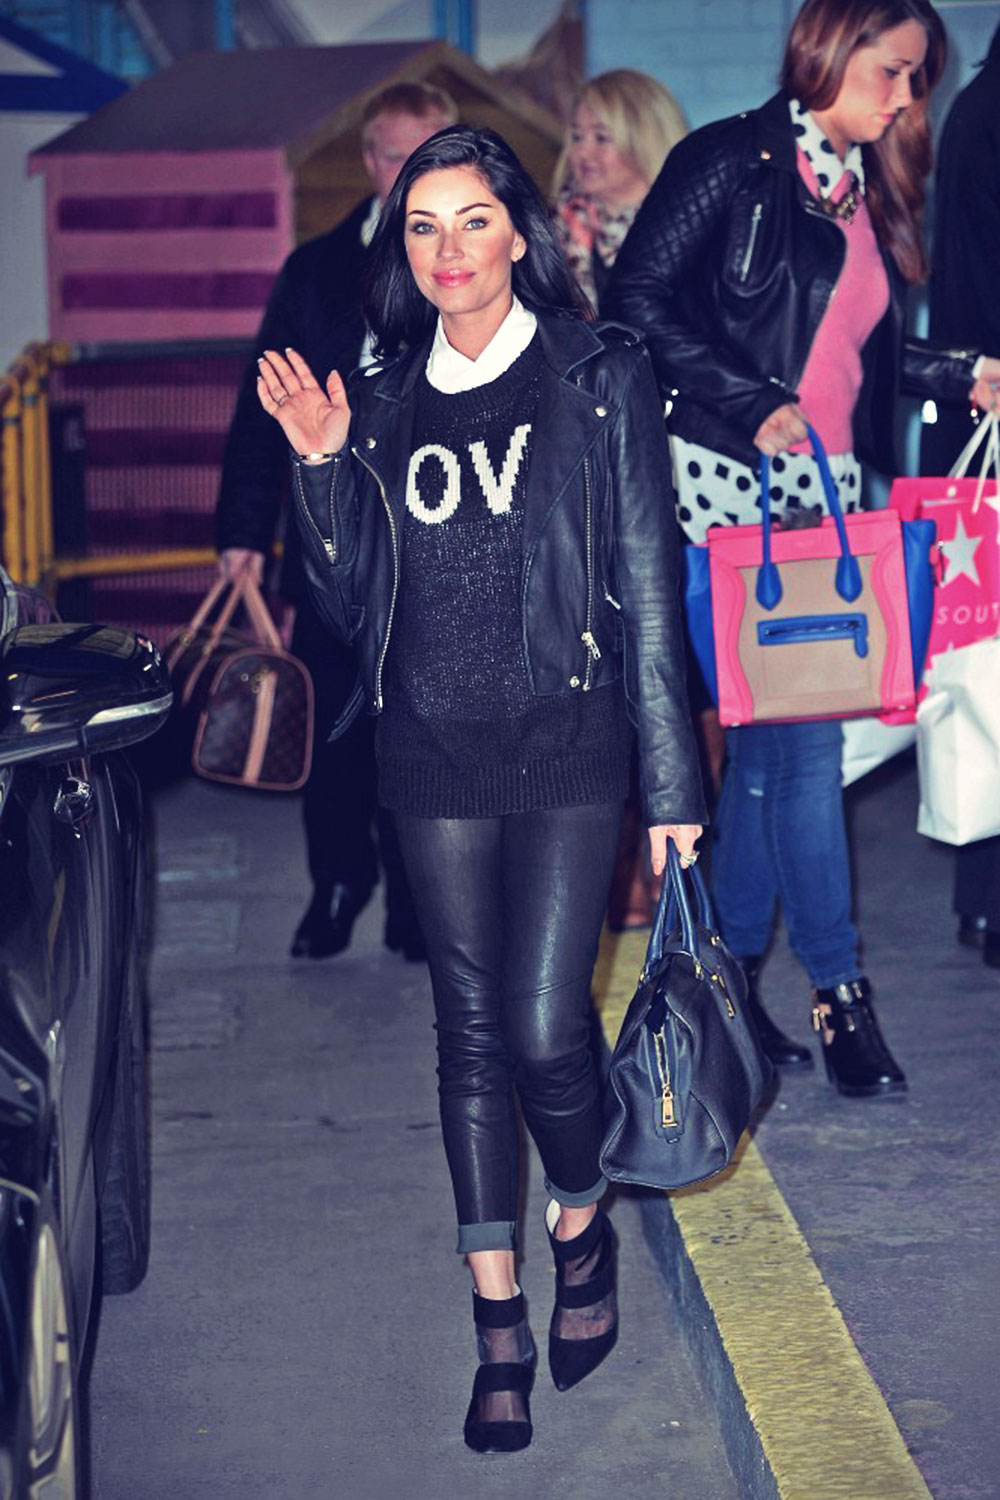 Jasmine Waltz arrives at the London studios